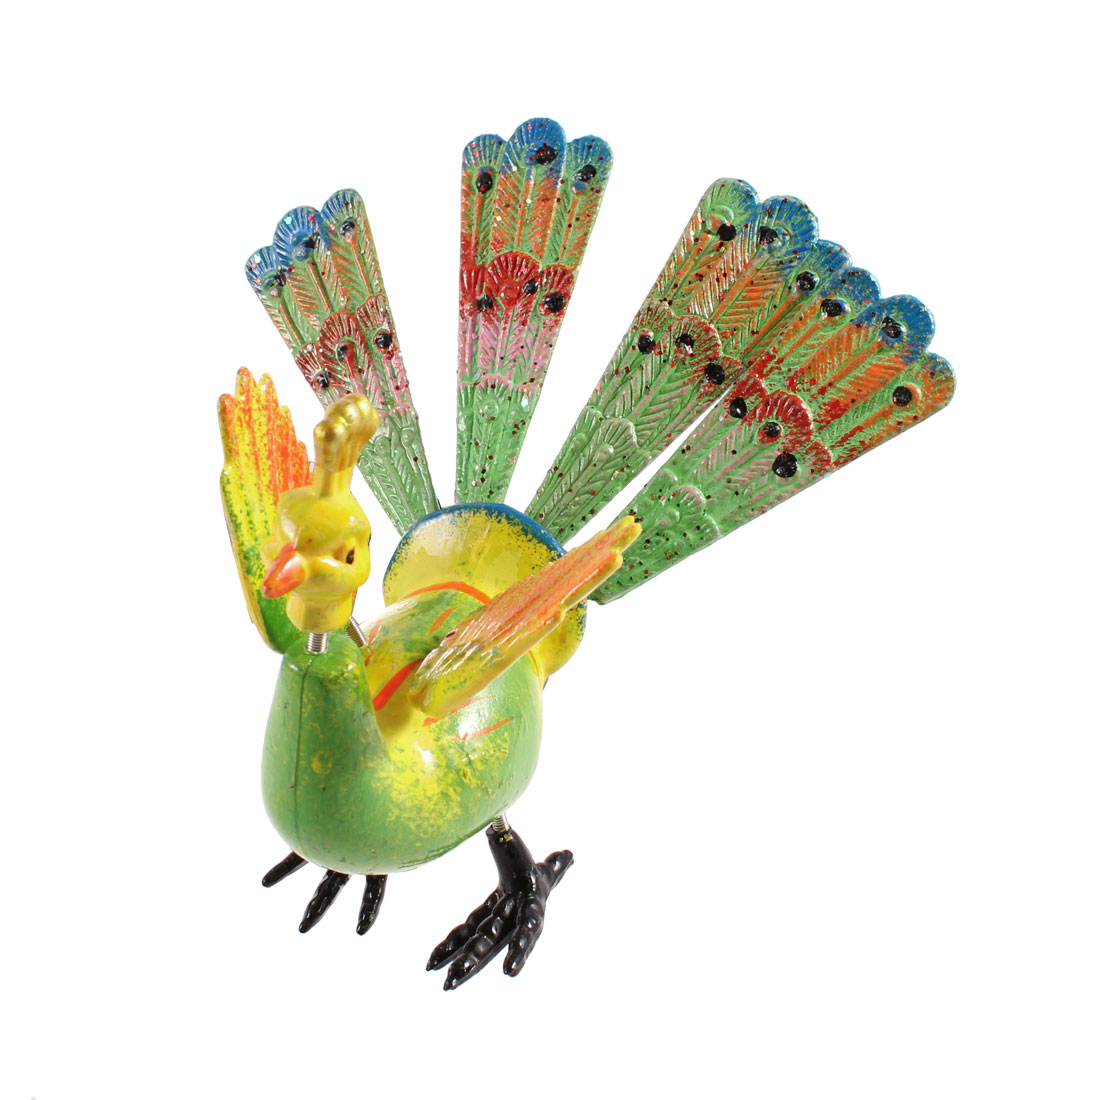 Fridge Refrigerator Artificial Peacock Magnetic Sticker Ornament Light Green Yellow